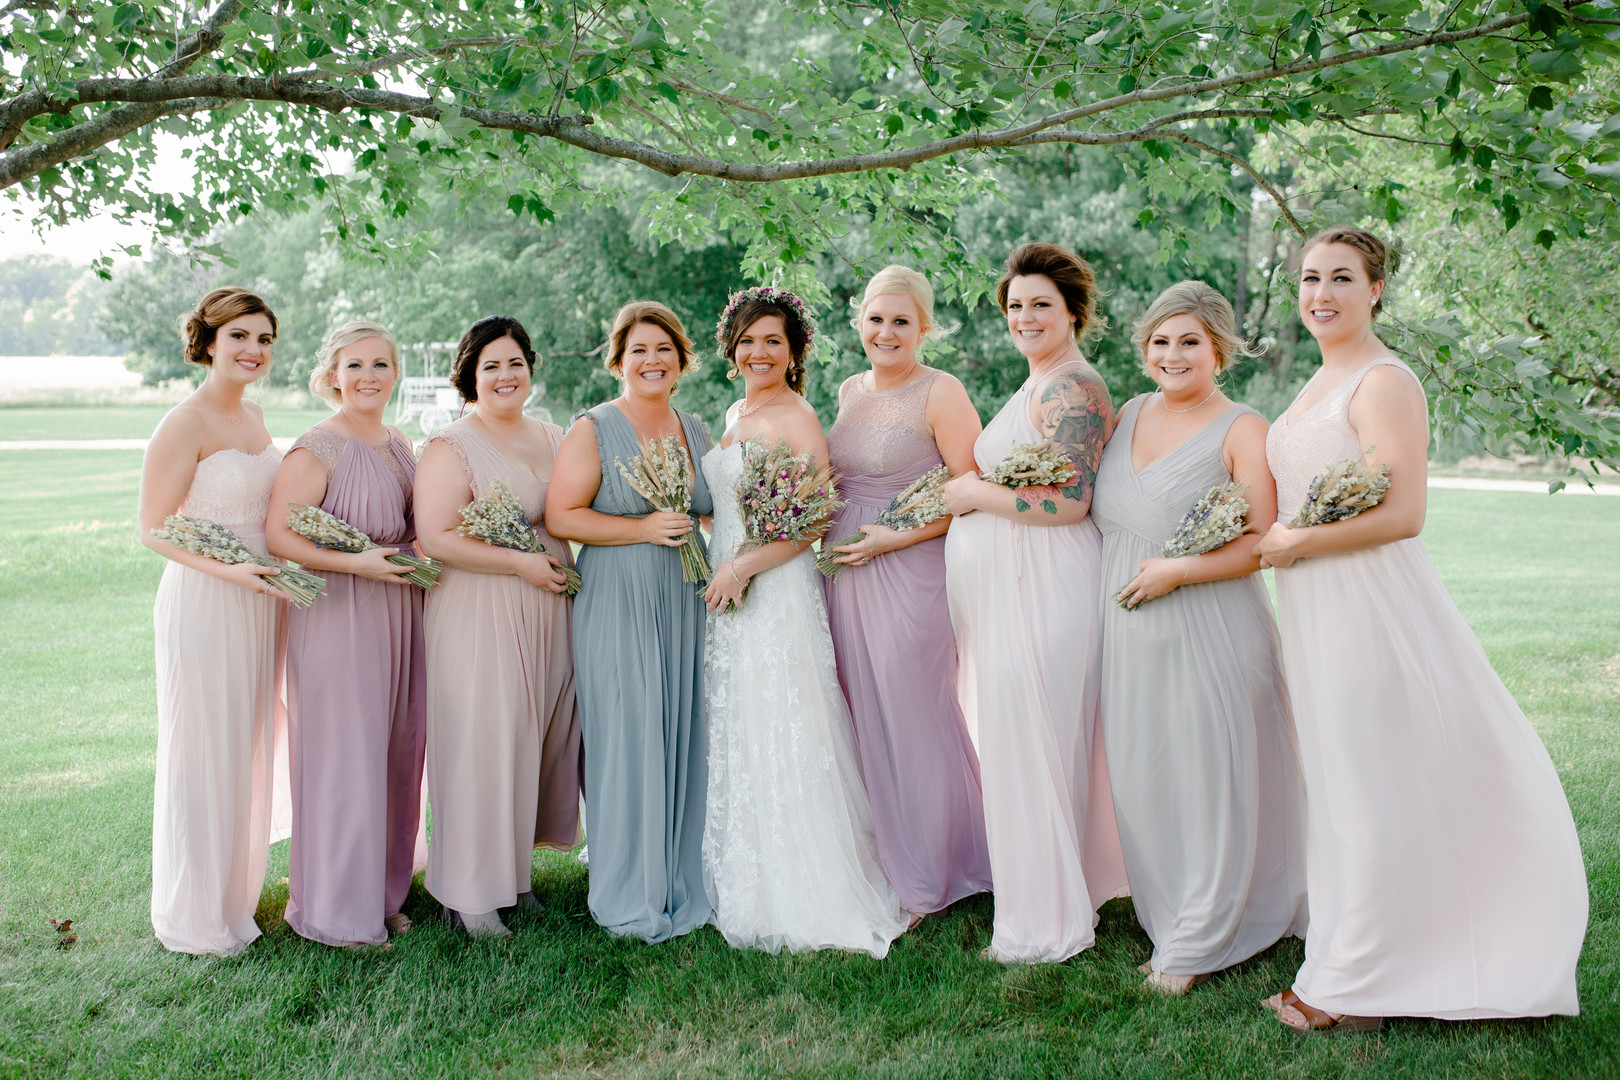 Mismatched pastel bridesmaids dresses: Rustic country wedding in Minooka, IL captured by Katie Brsan Photography. Visit CHItheeWED.com for more wedding inspiration!